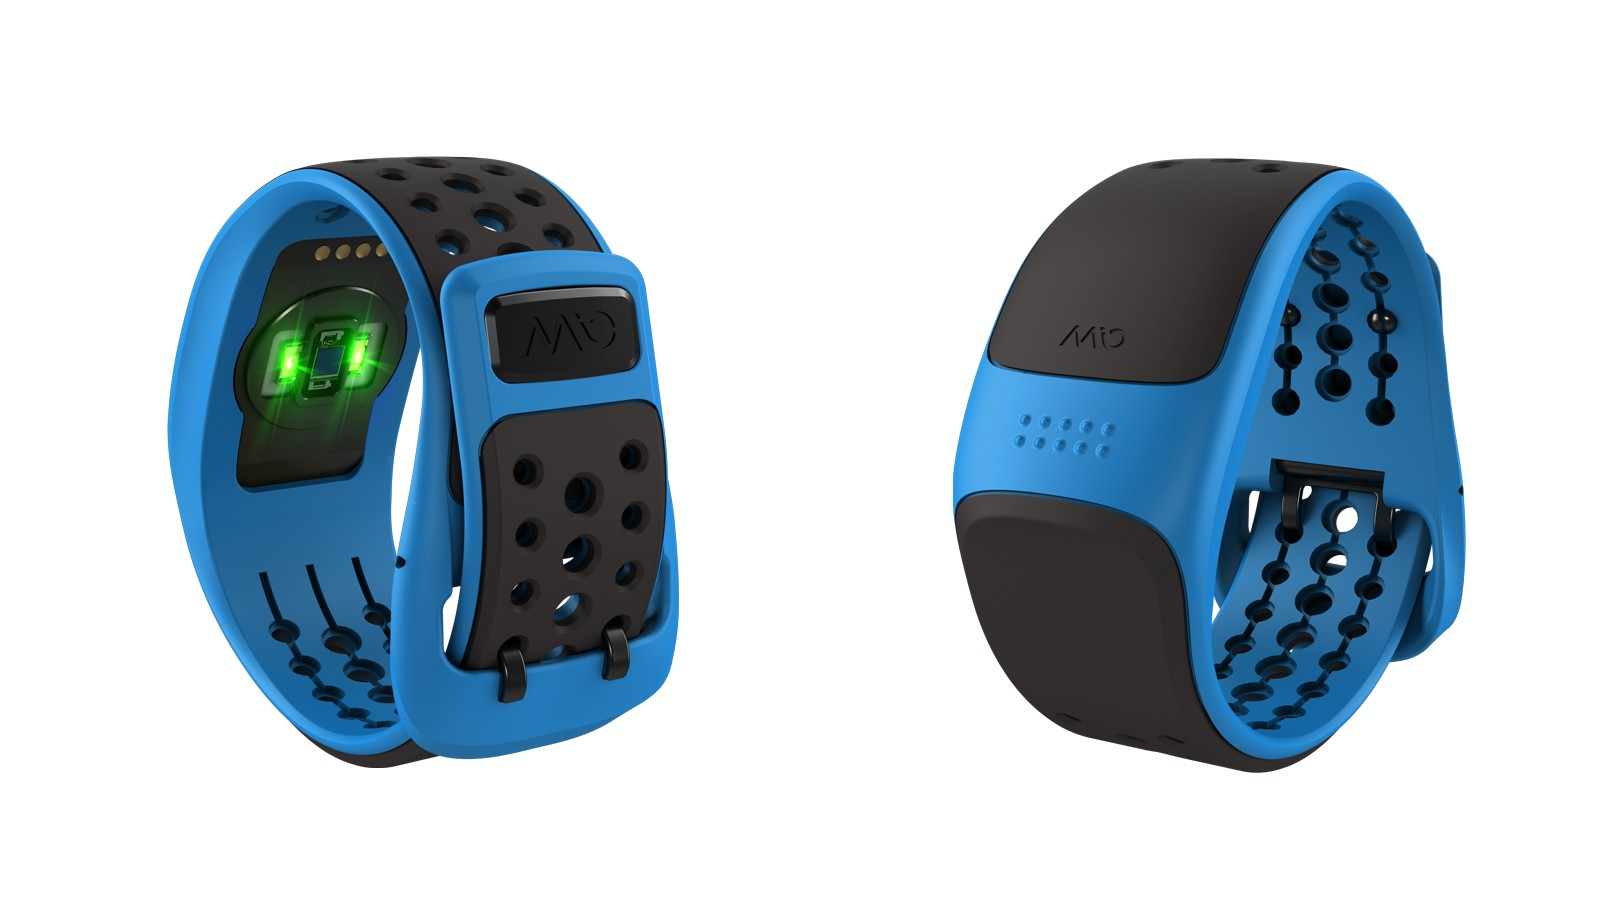 LEDs and an optical sensor detect heart rate, and the VELO can also translate ANT+ signals from speed and cadence sensors into Bluetooth for smartphone connectivity